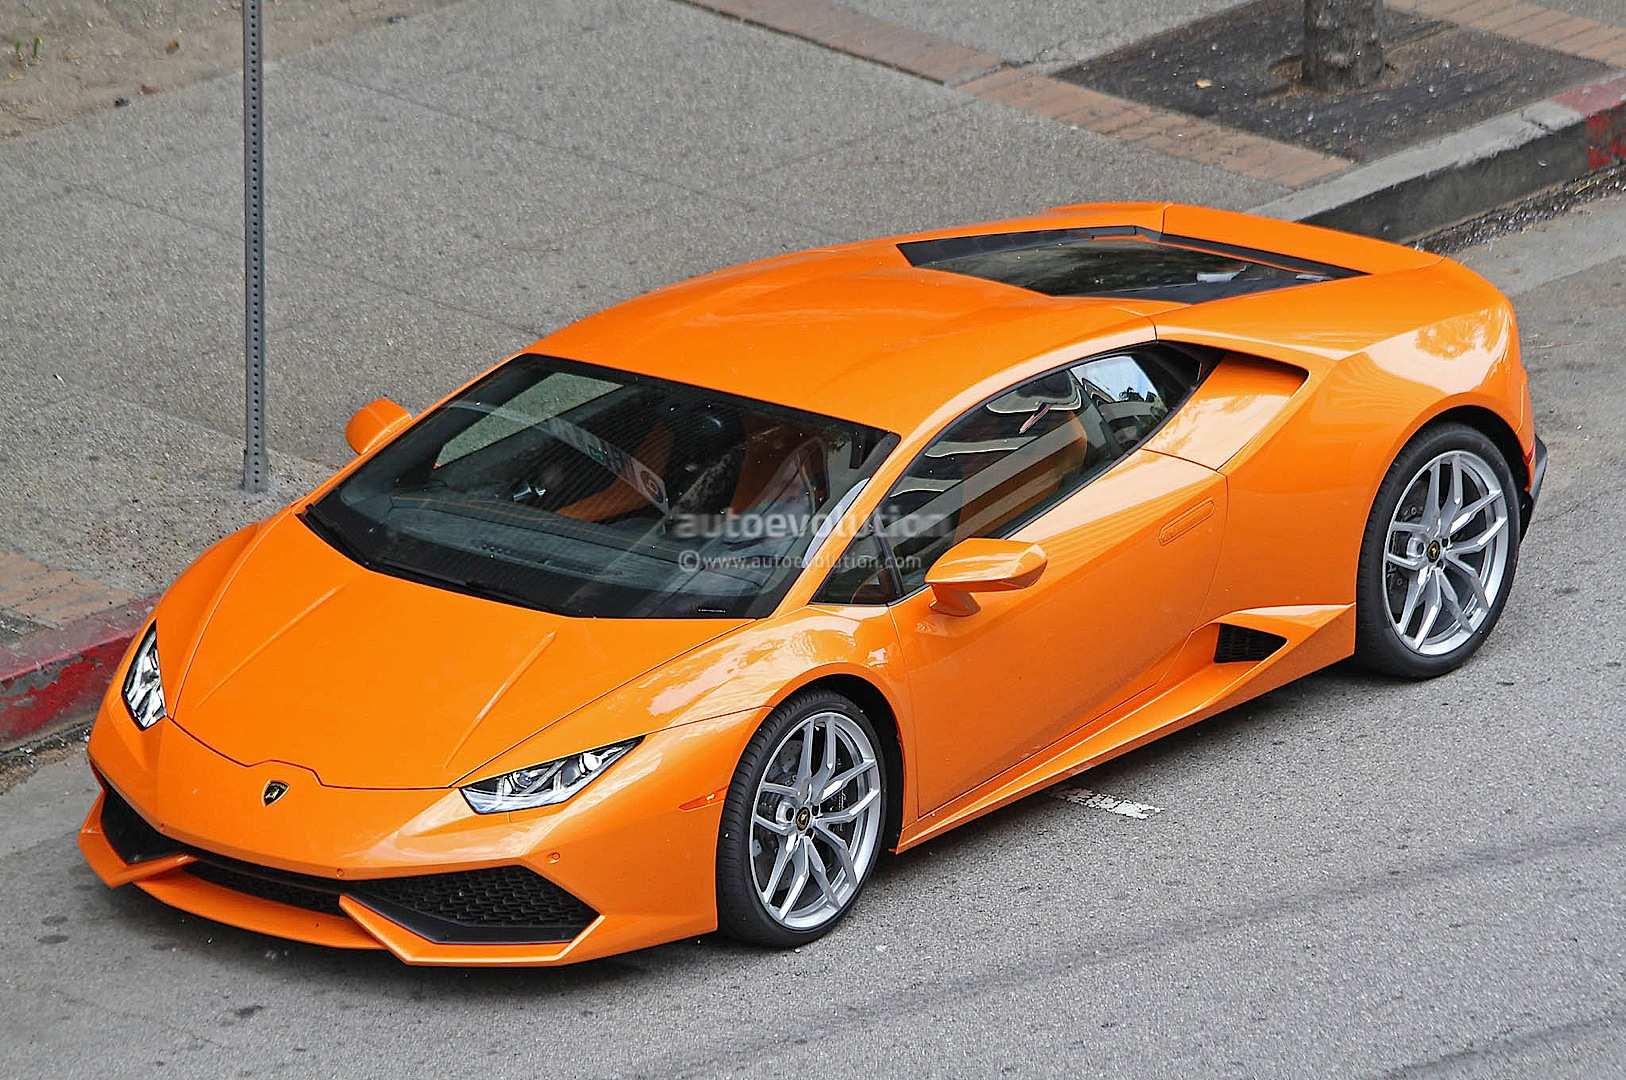 spyshots orange lamborghini huracan street racing in the us autoevolution. Black Bedroom Furniture Sets. Home Design Ideas